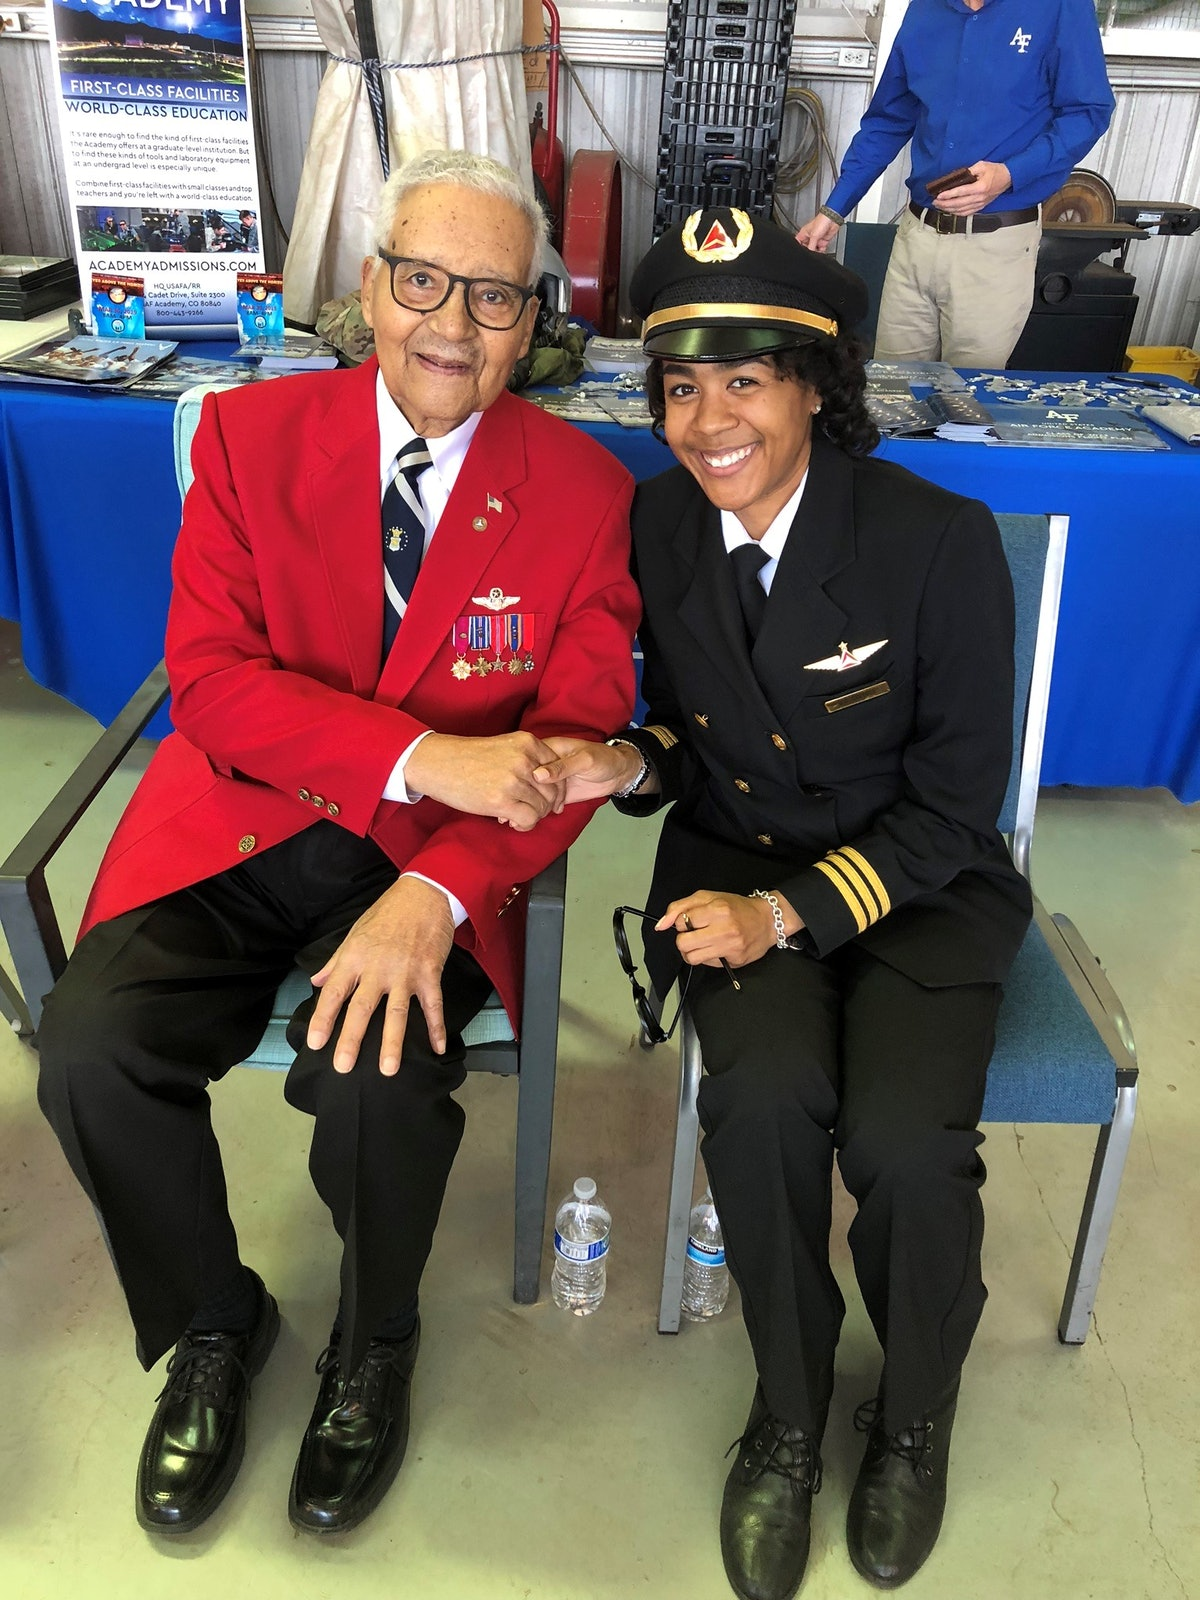 This is Grayson with Tuskegee Airmen Col. Charles McGee, a retired fighter pilot.